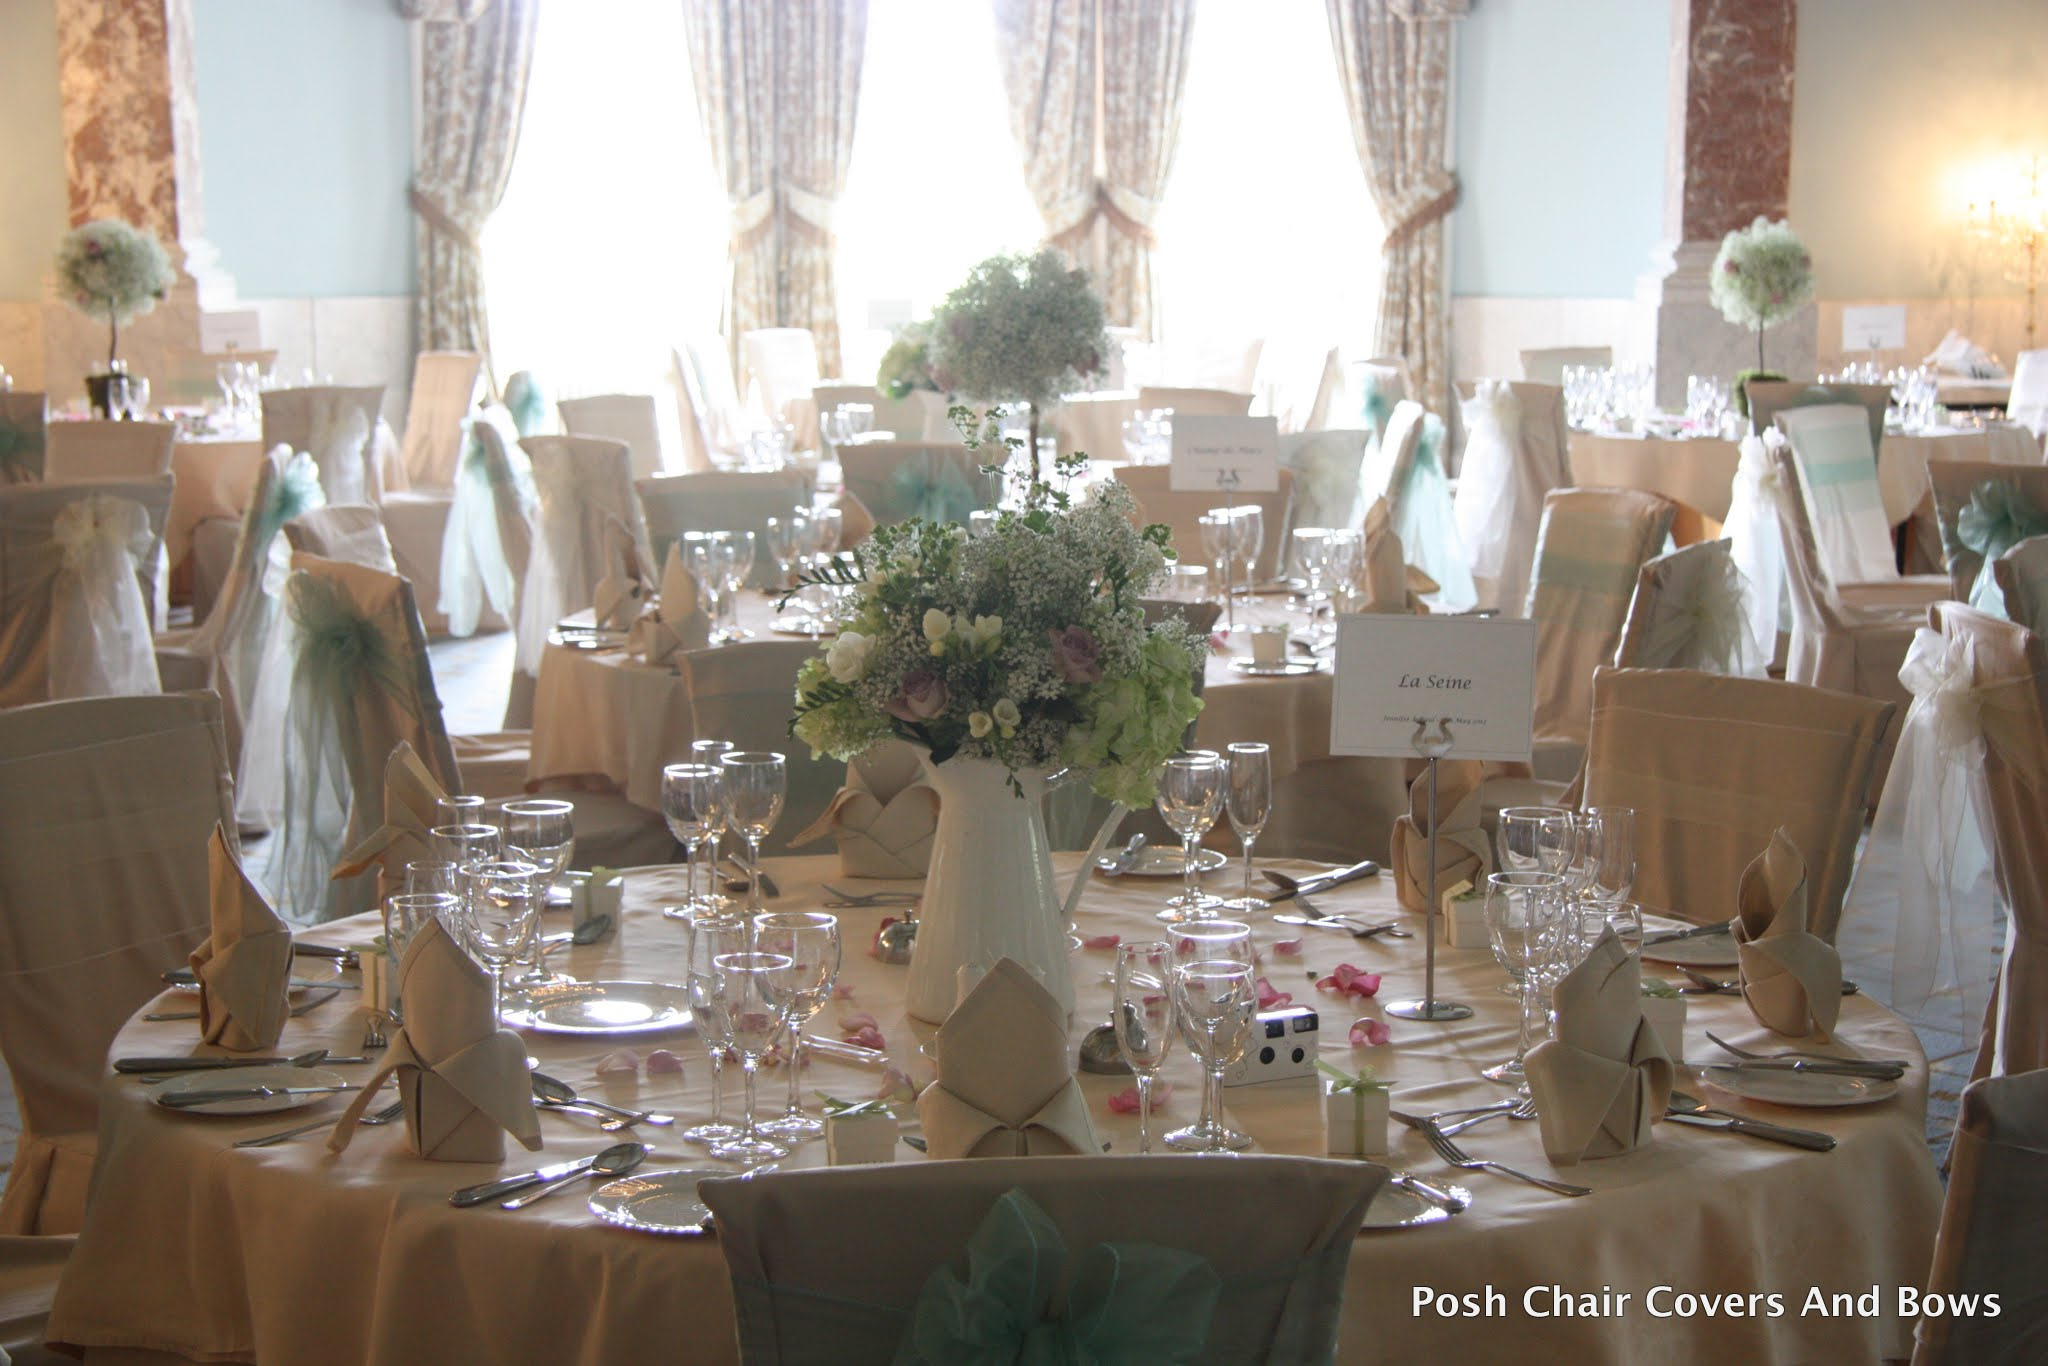 Posh Chair Covers  Bows  Chiavari Chairs Flower Wall